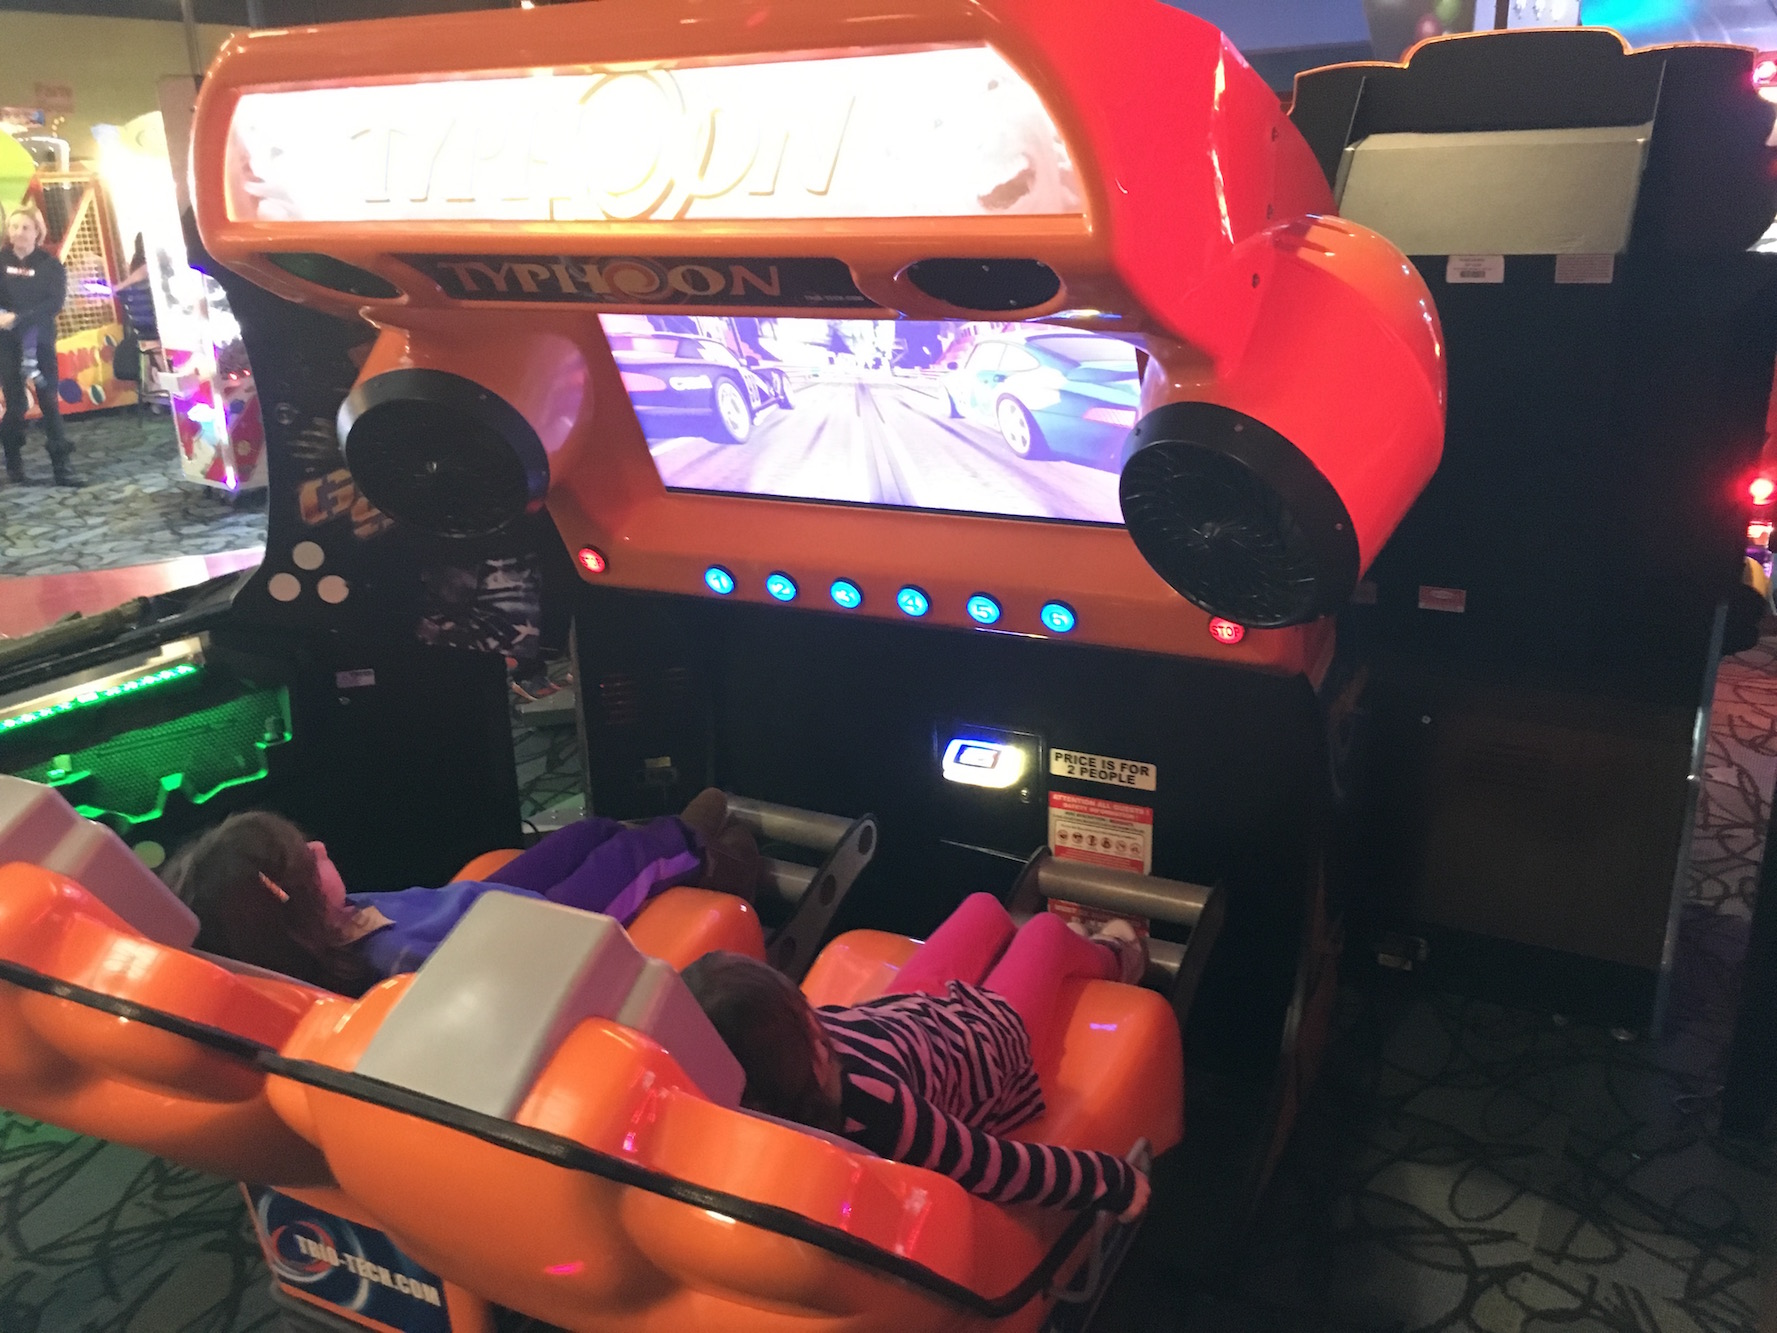 One of the video games where they got to sit back and feel like they were driving or flying.